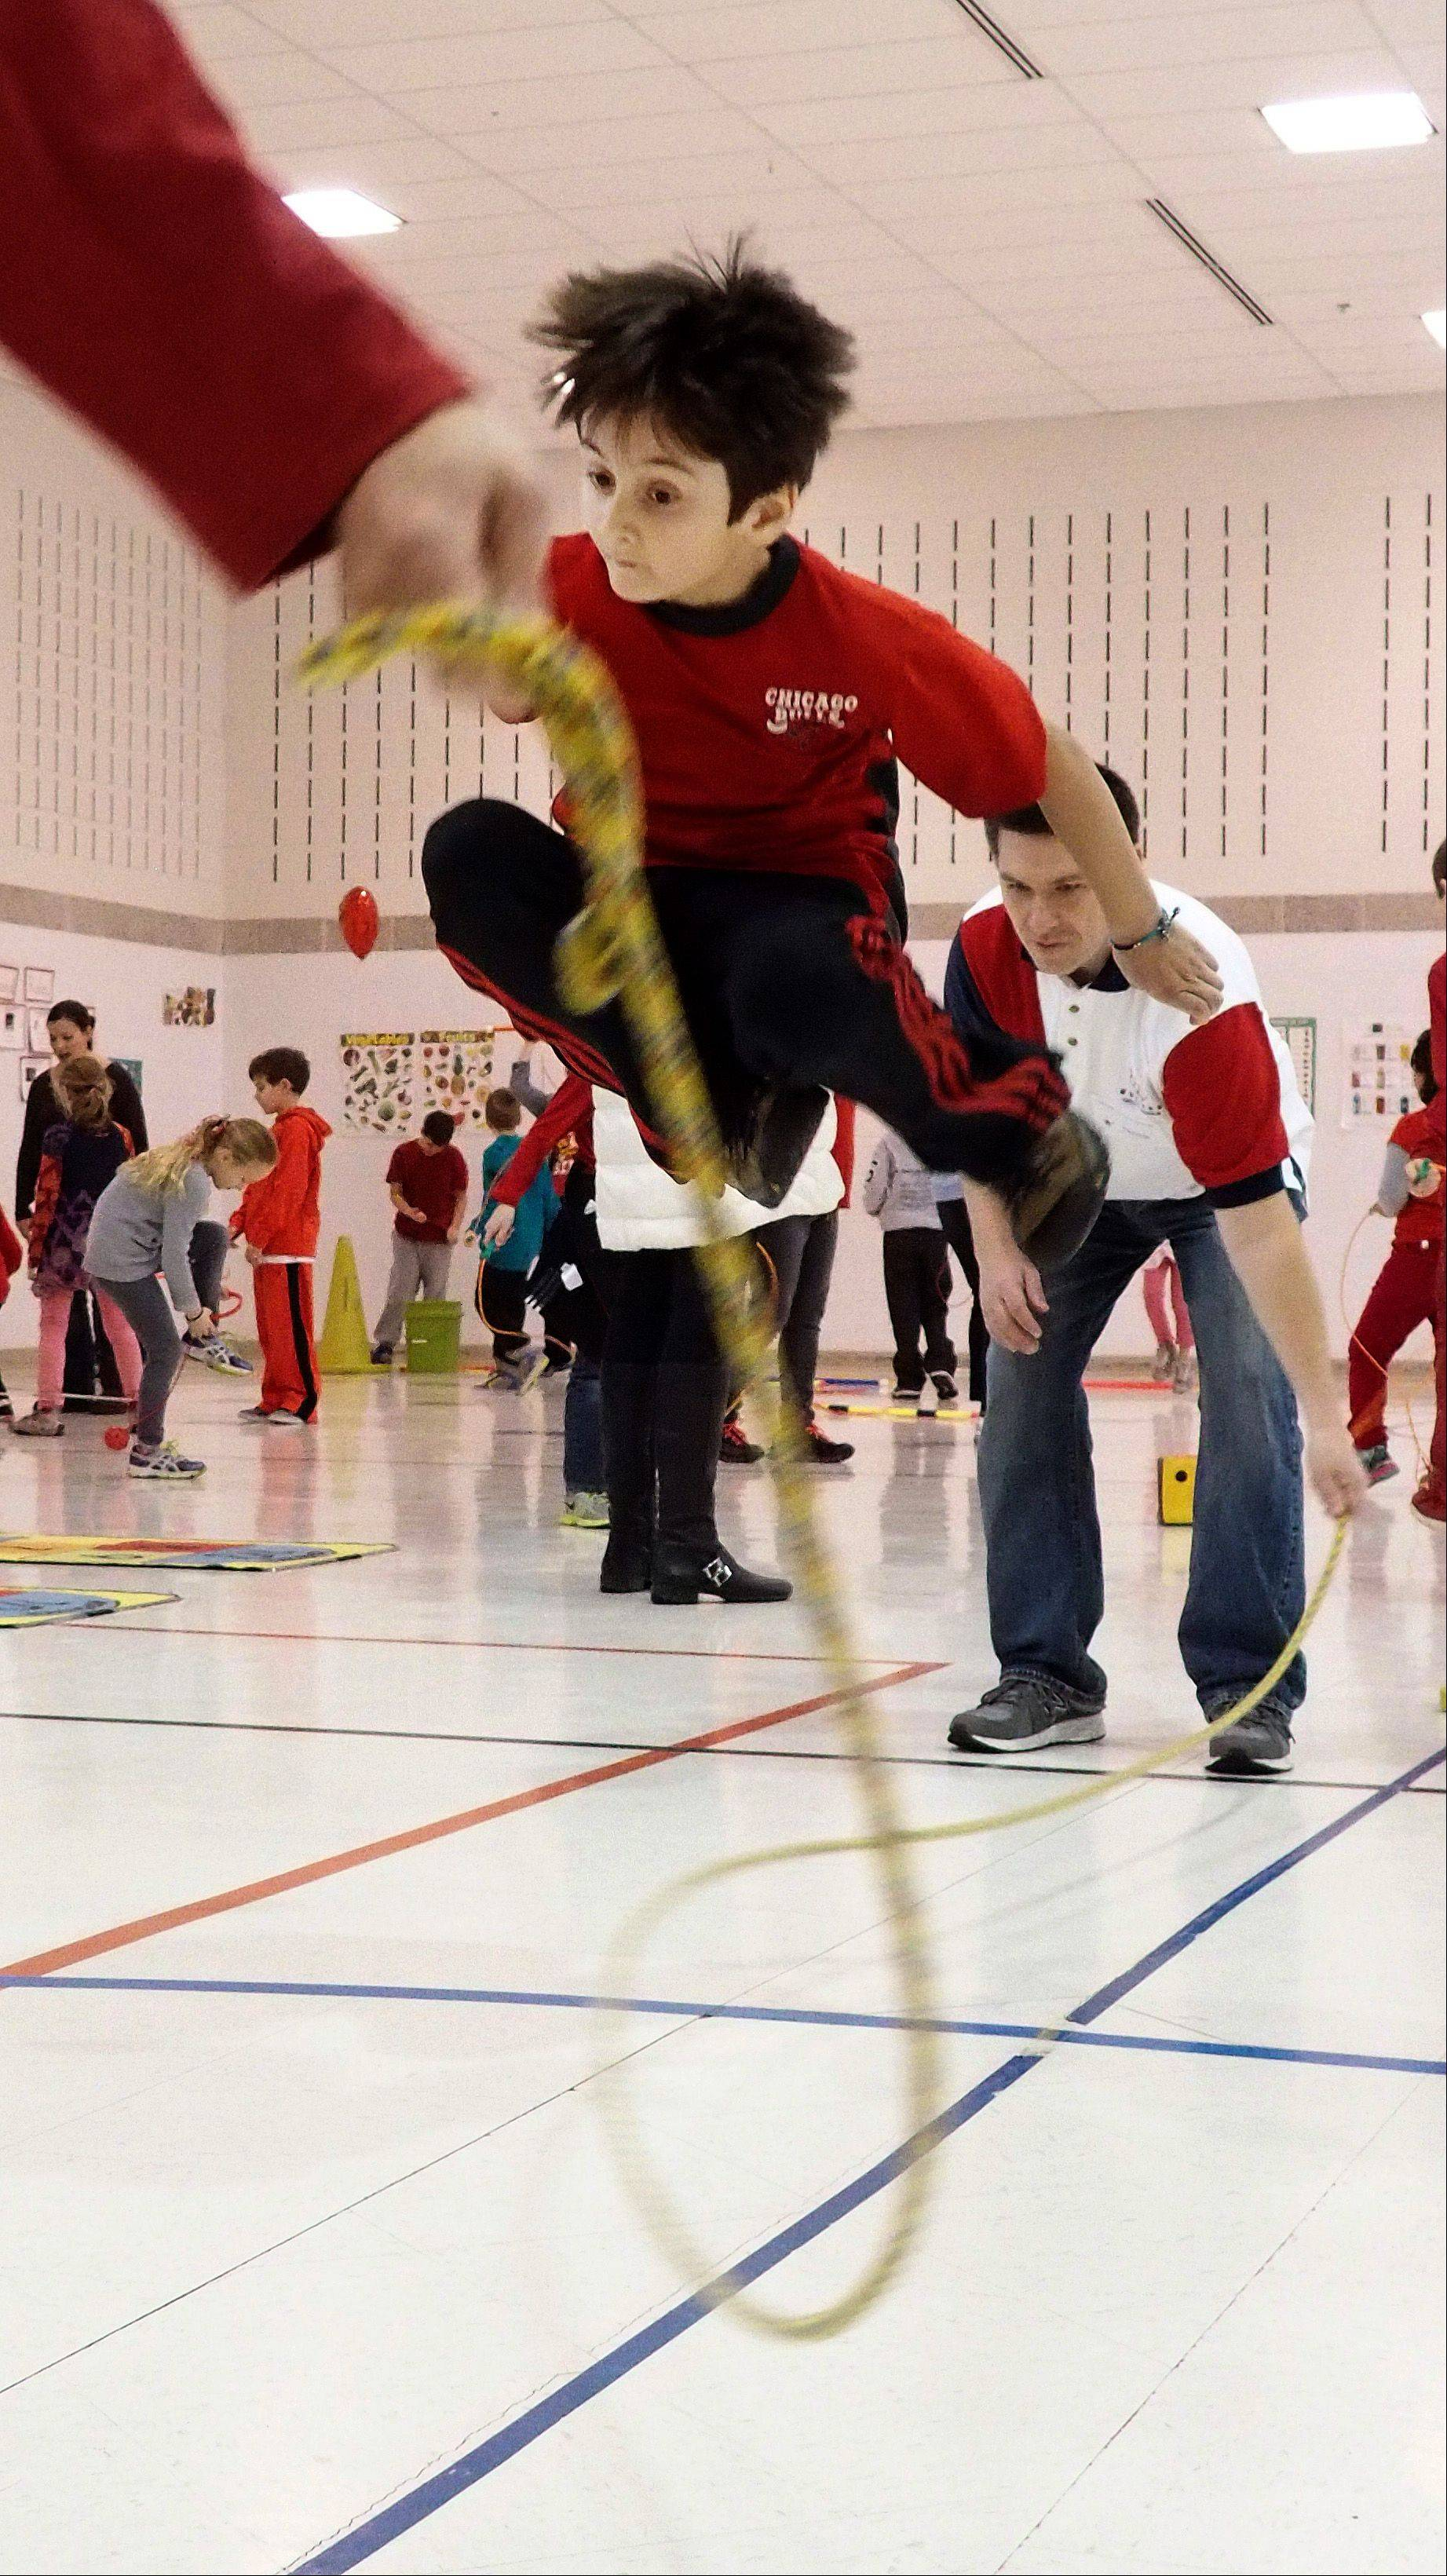 Alejandro Galbraith jumps as high as possible Friday during Longfellow School's Jump Rope for Heart program in Wheaton.